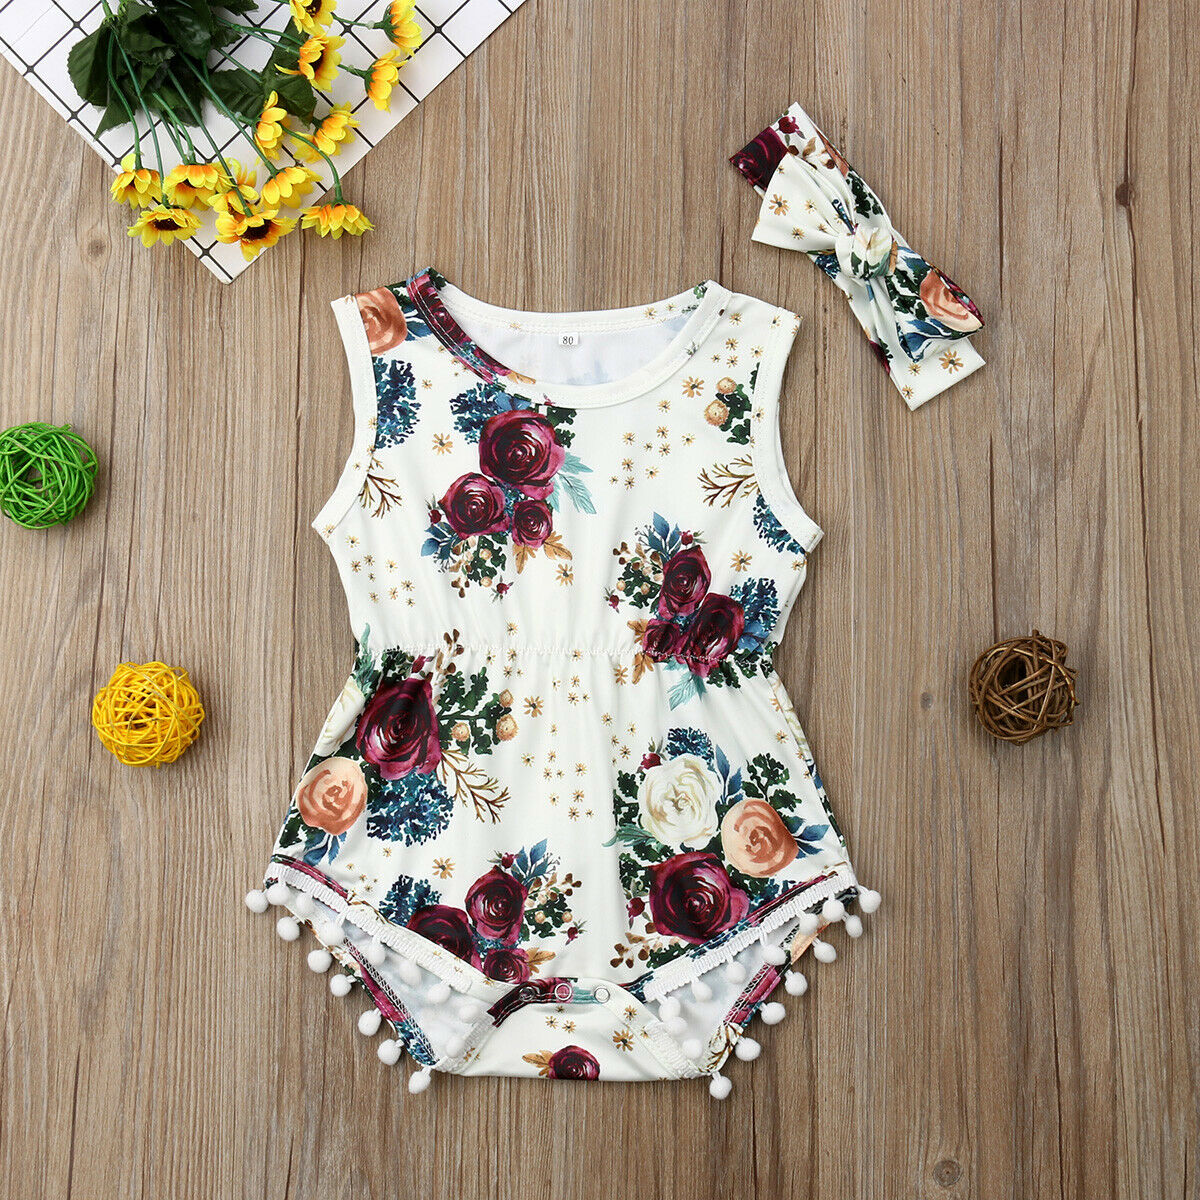 For Toddler Baby Girl Floral  Bodysuit With Headband Outfit Set Clothes